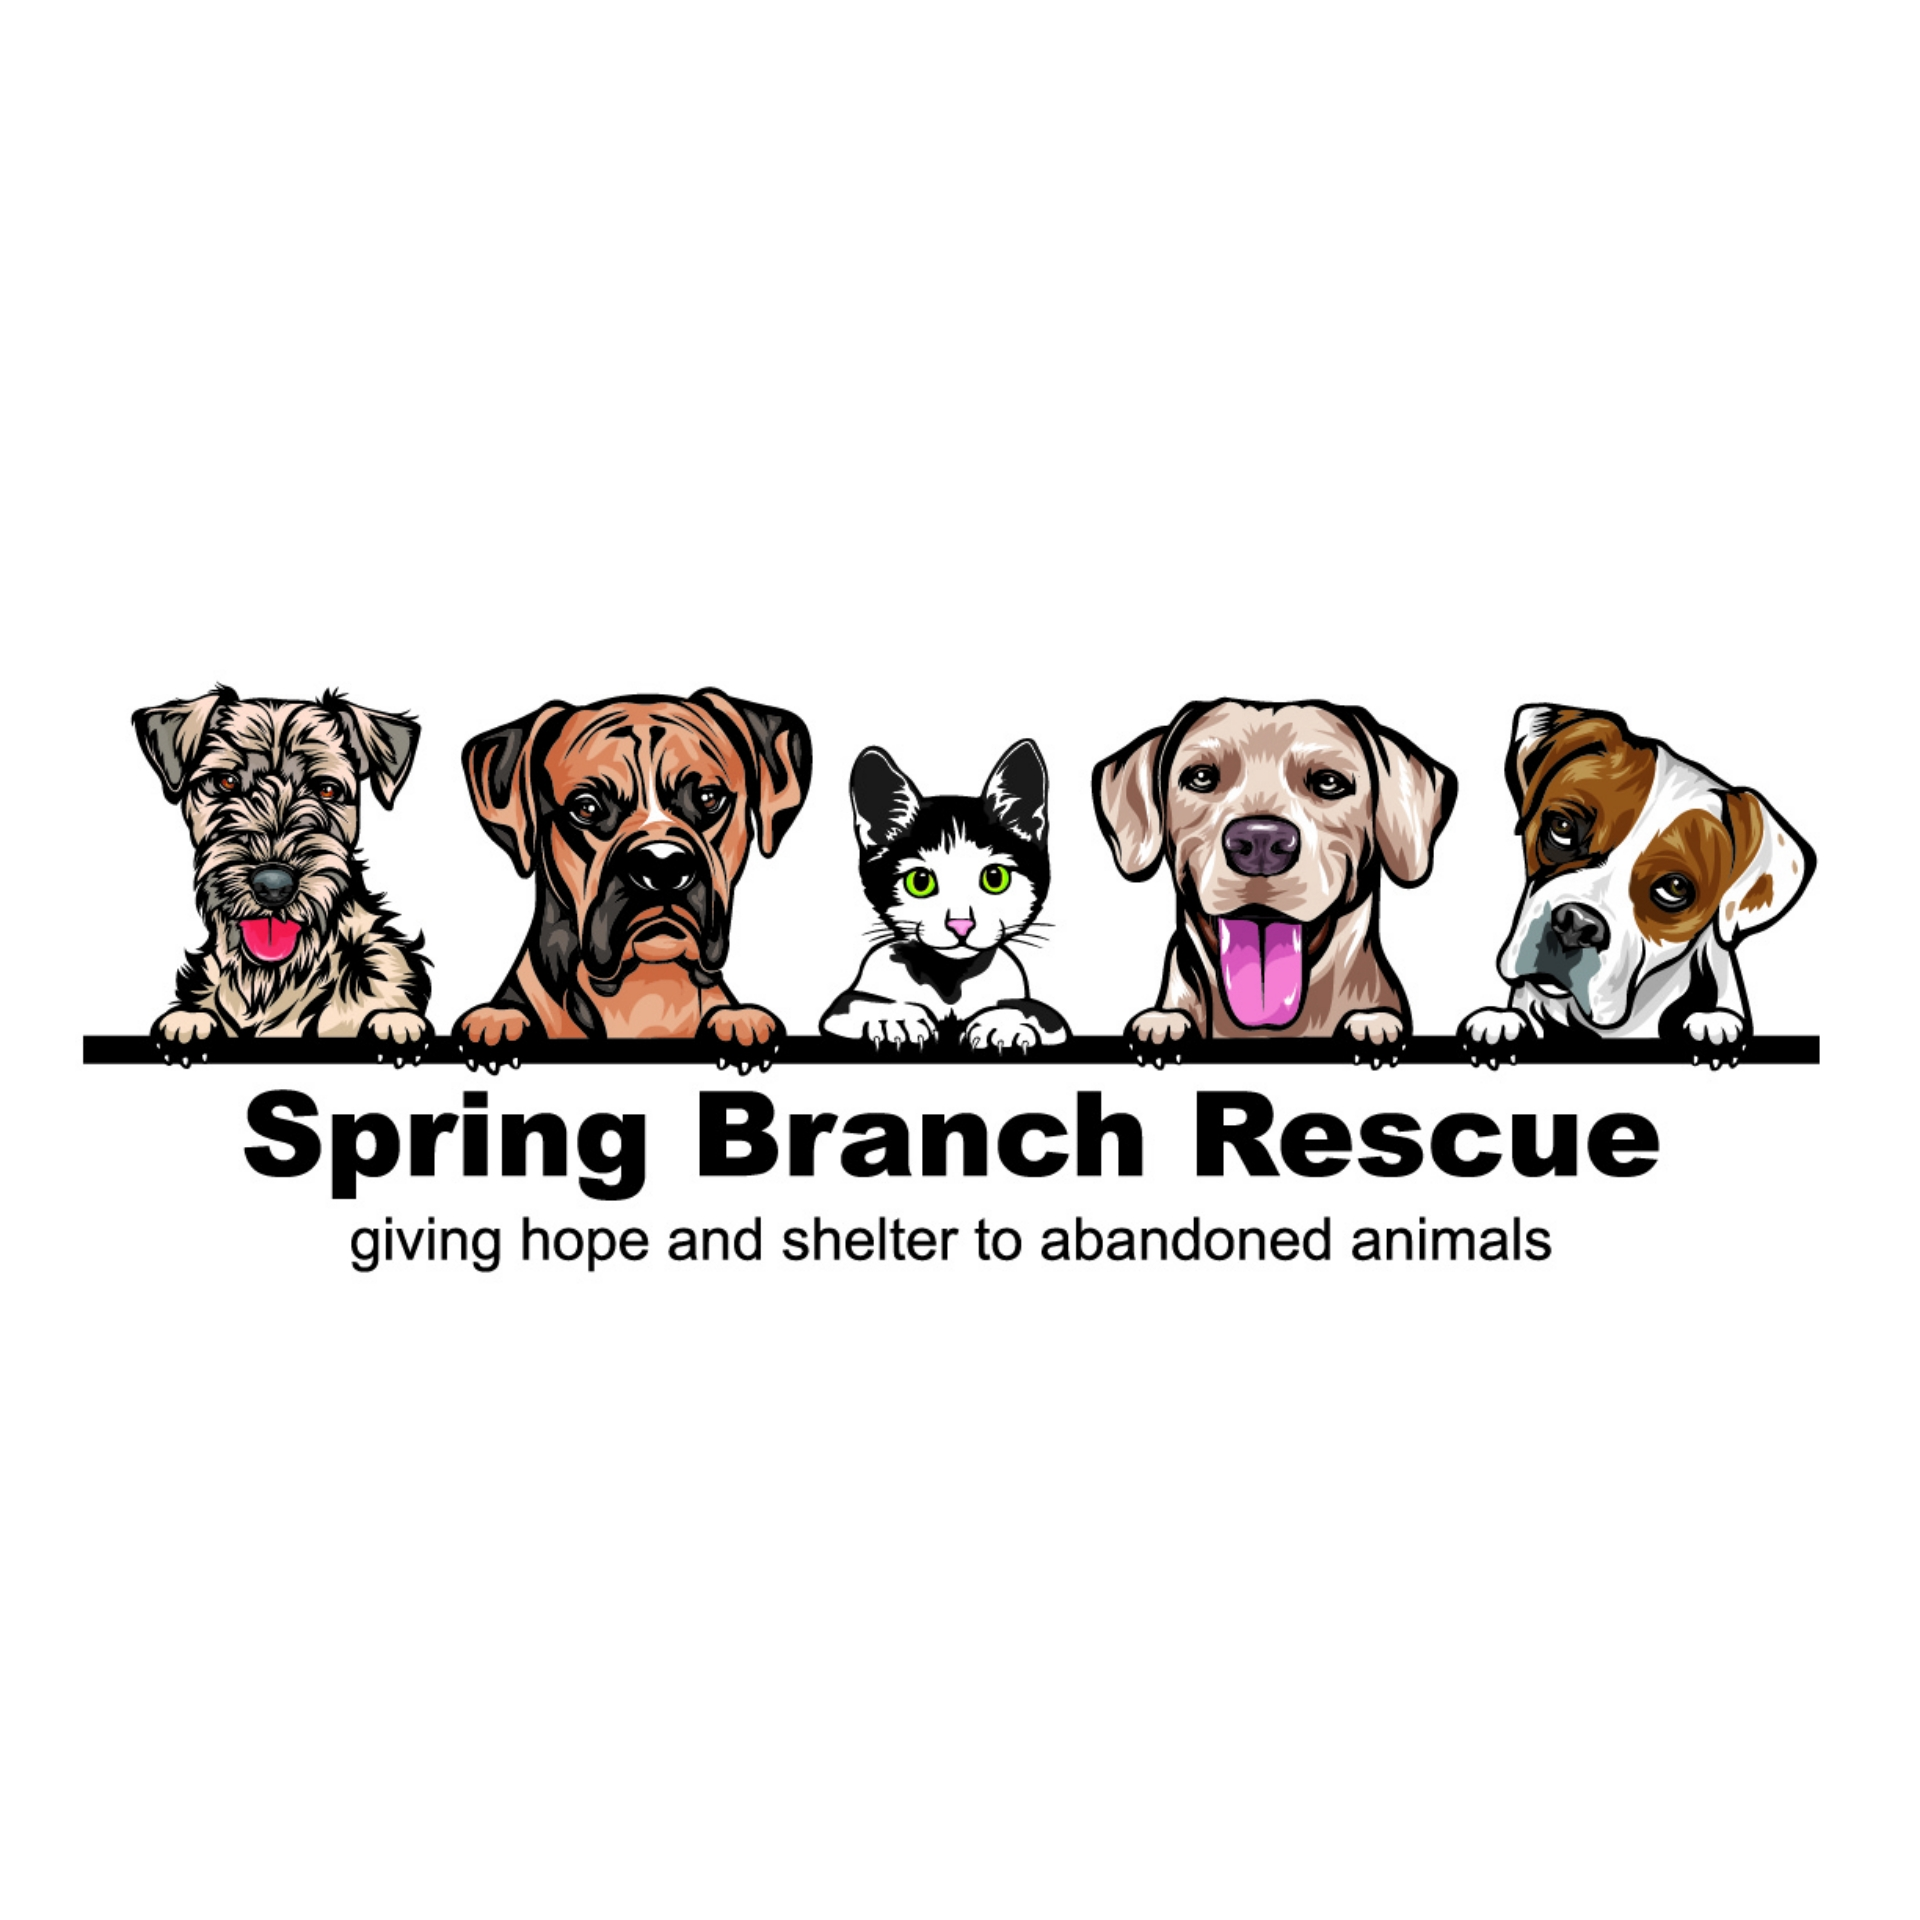 Spring Branch Rescue